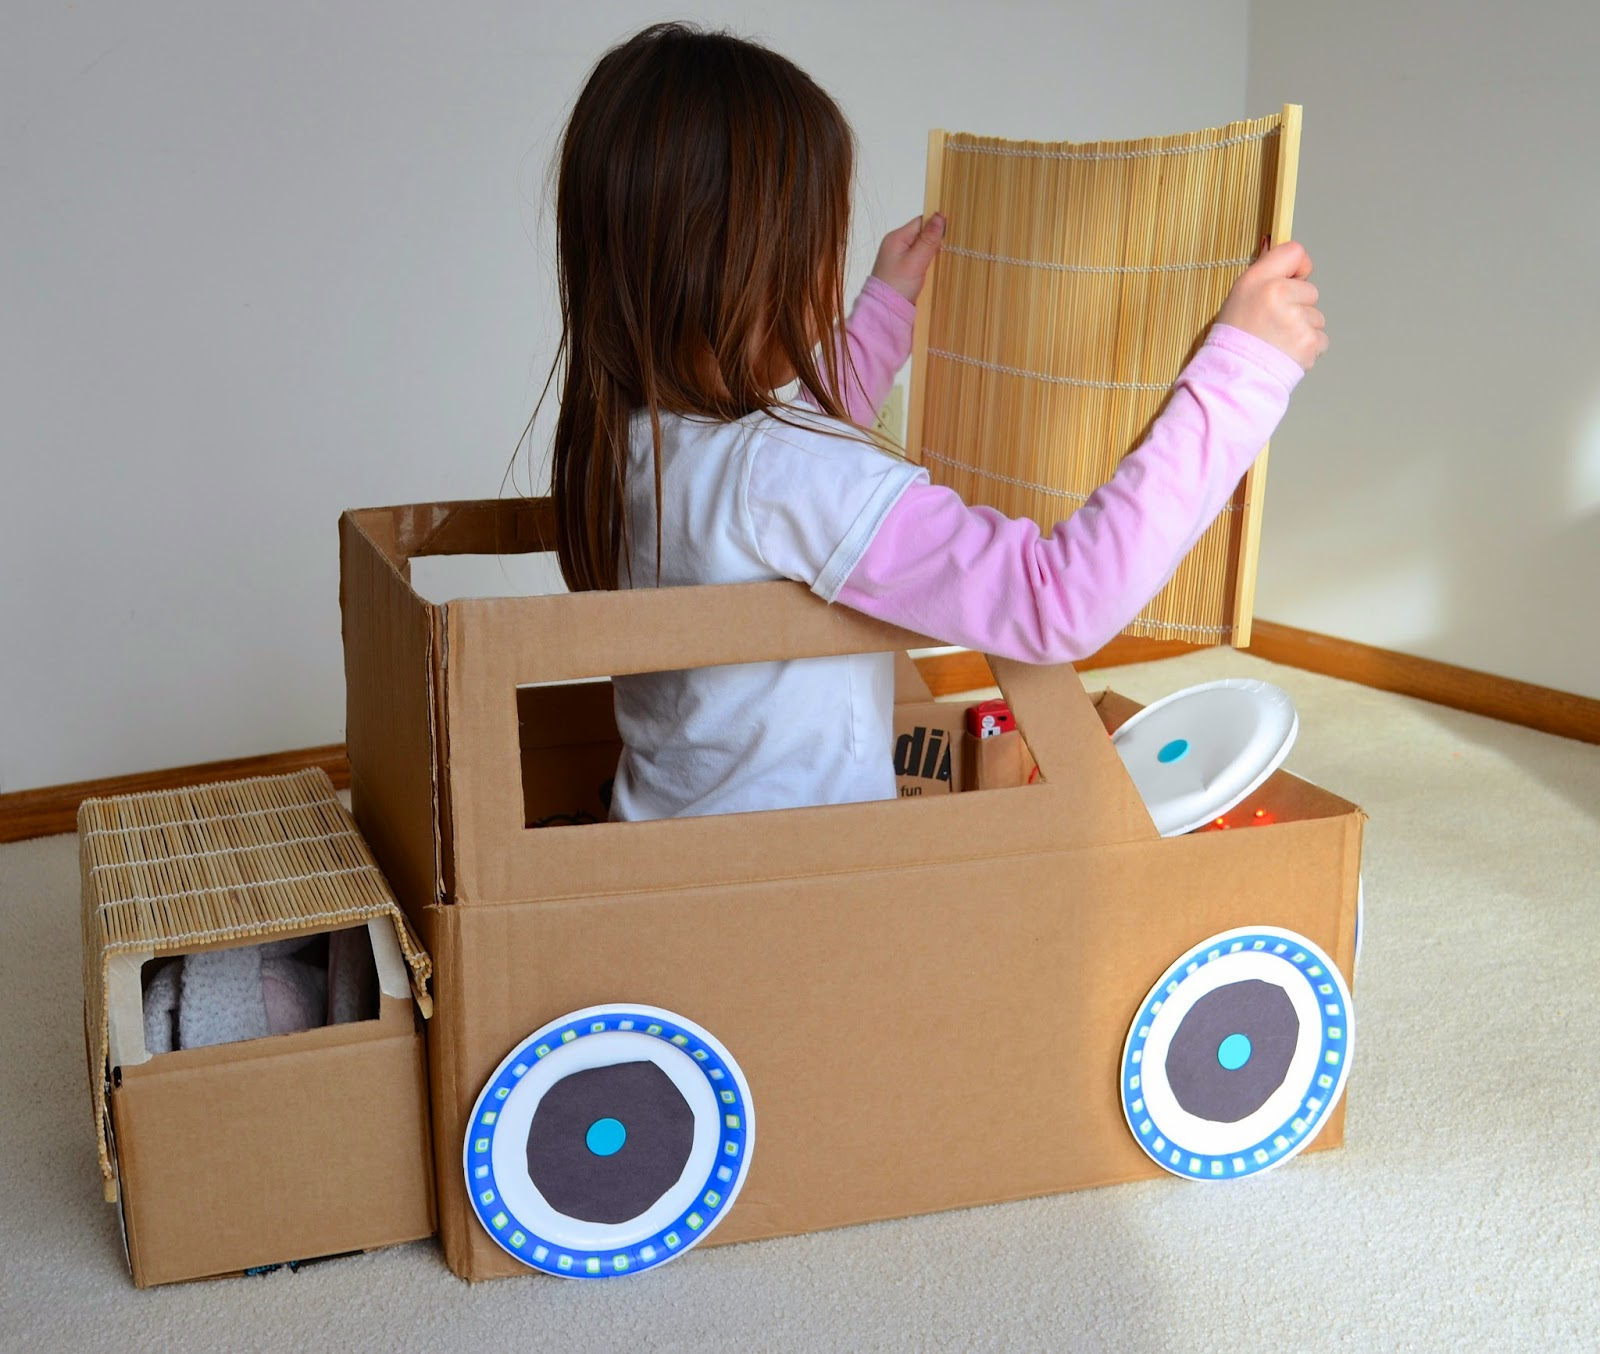 how to build a robot out of boxes